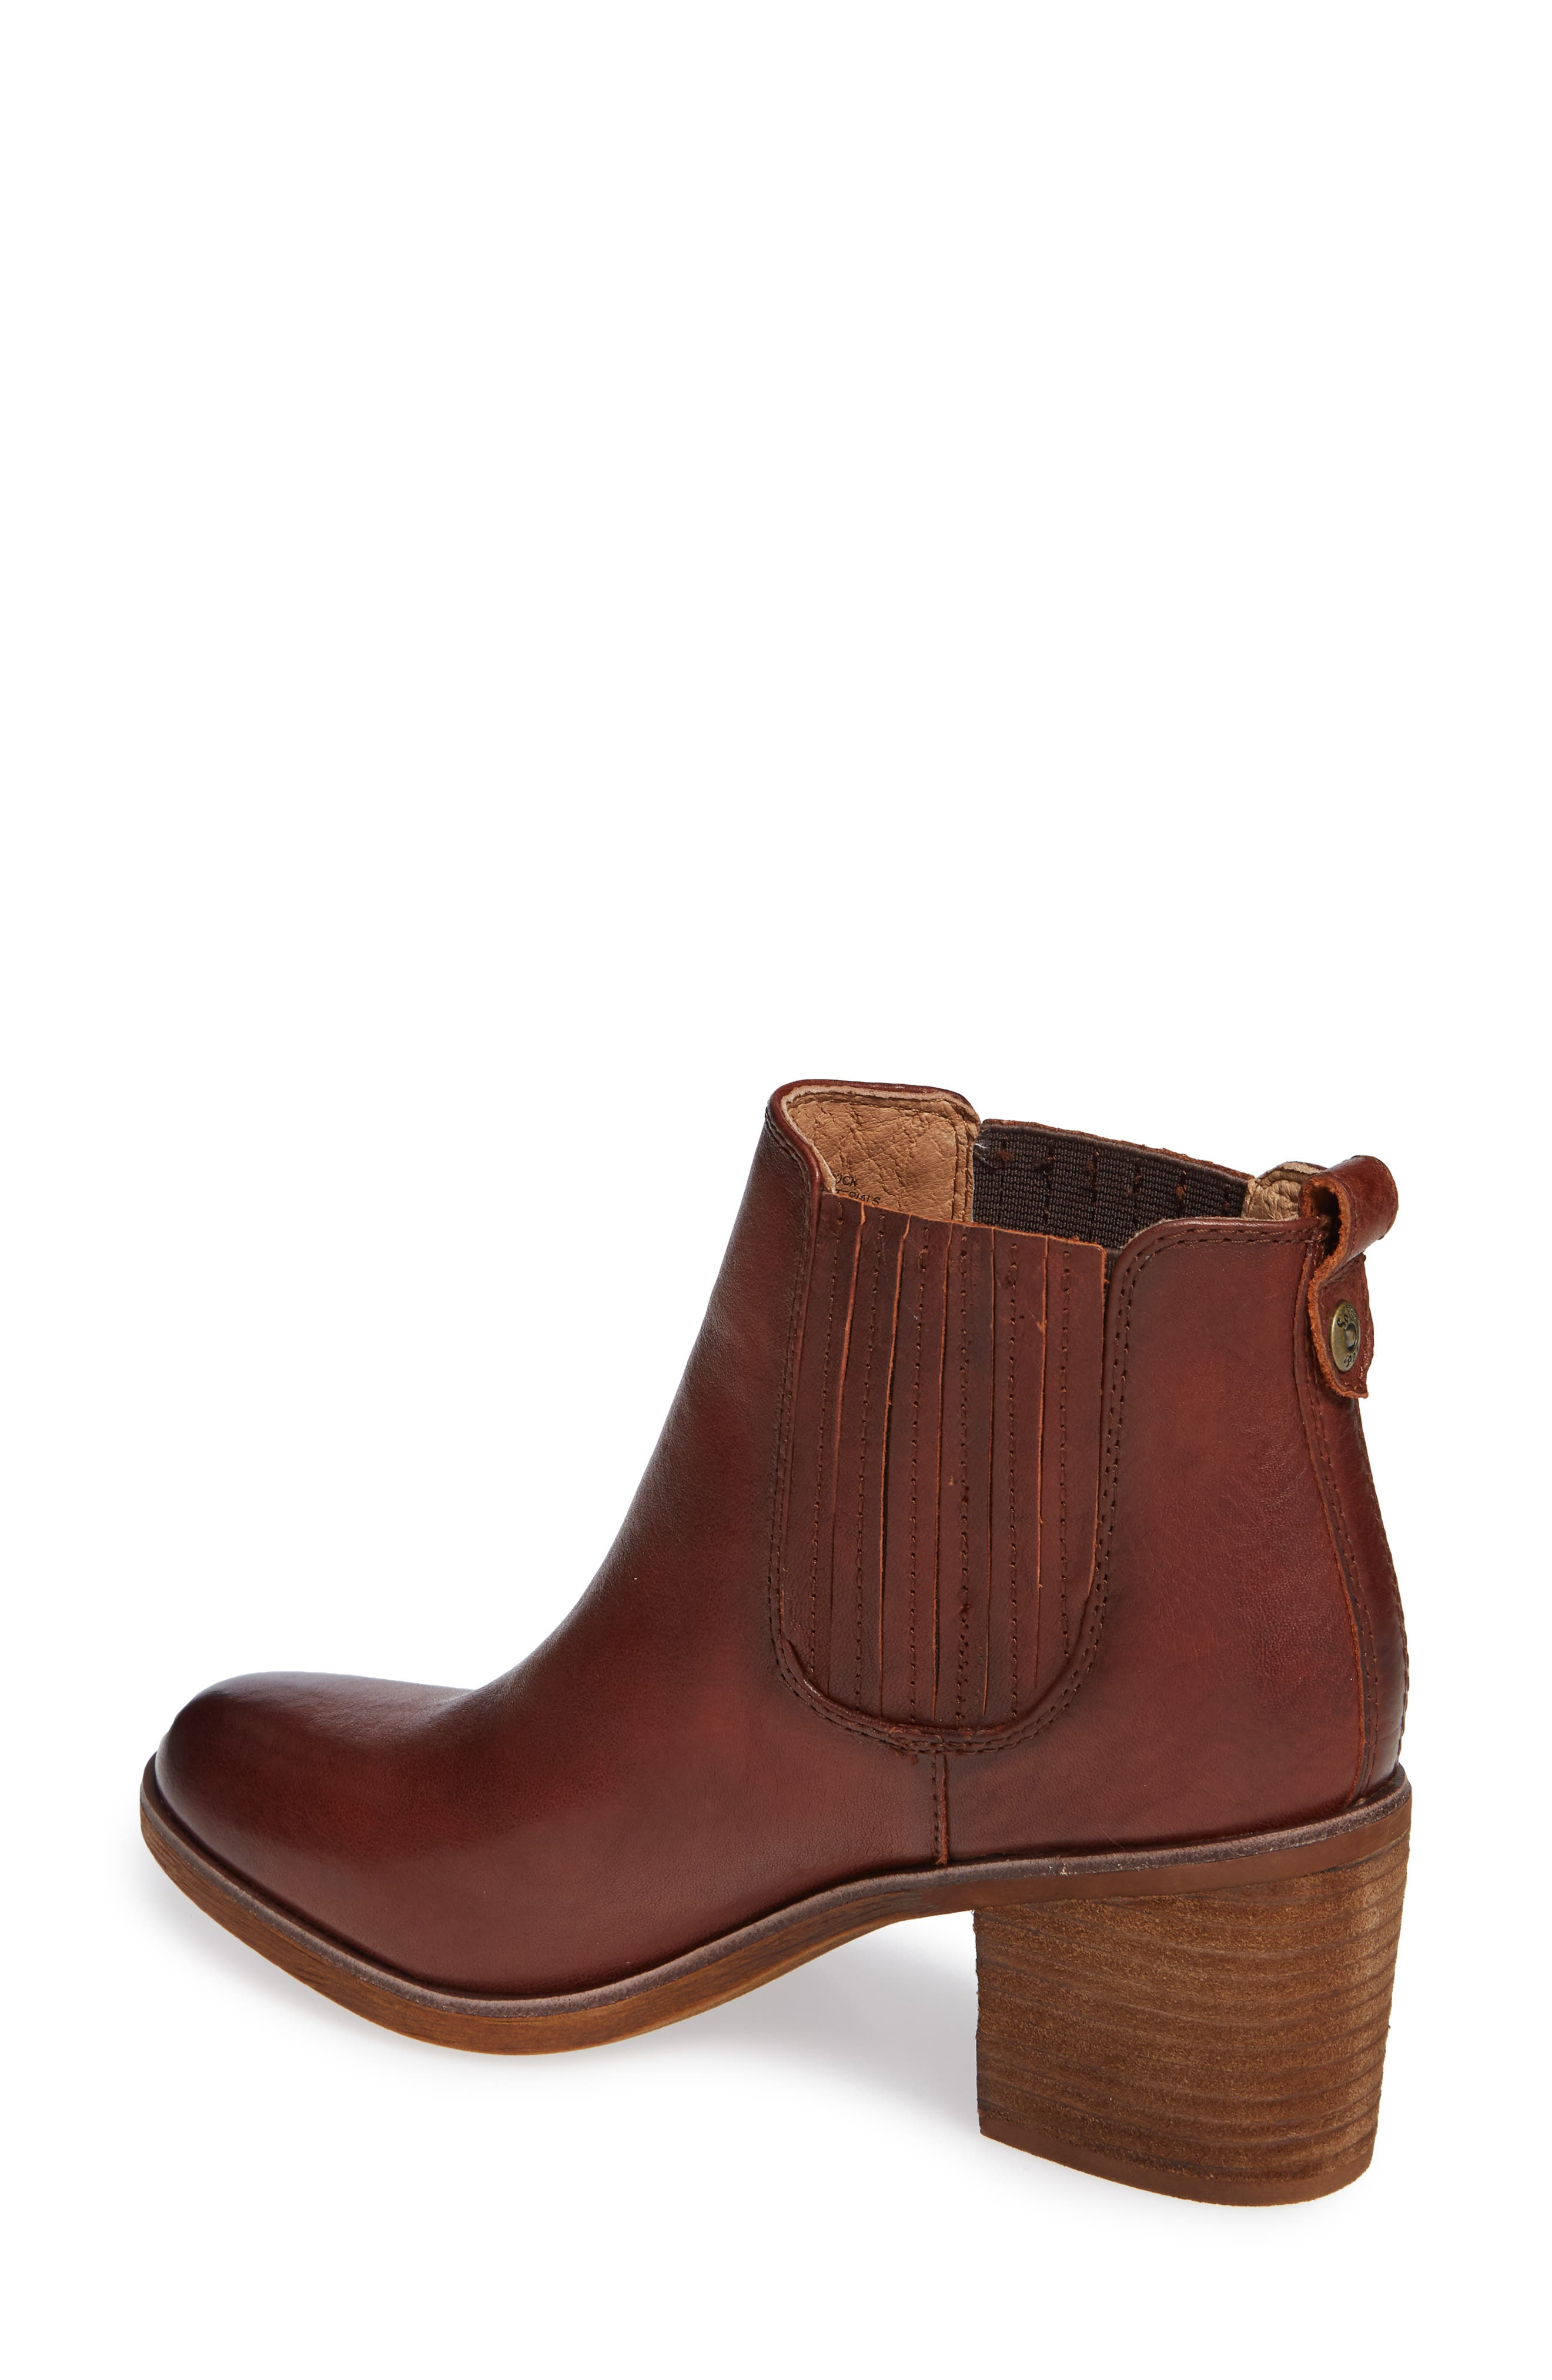 Sadova Chelsea Bootie,                             Alternate thumbnail 2, color,                             WHISKEY LEATHER